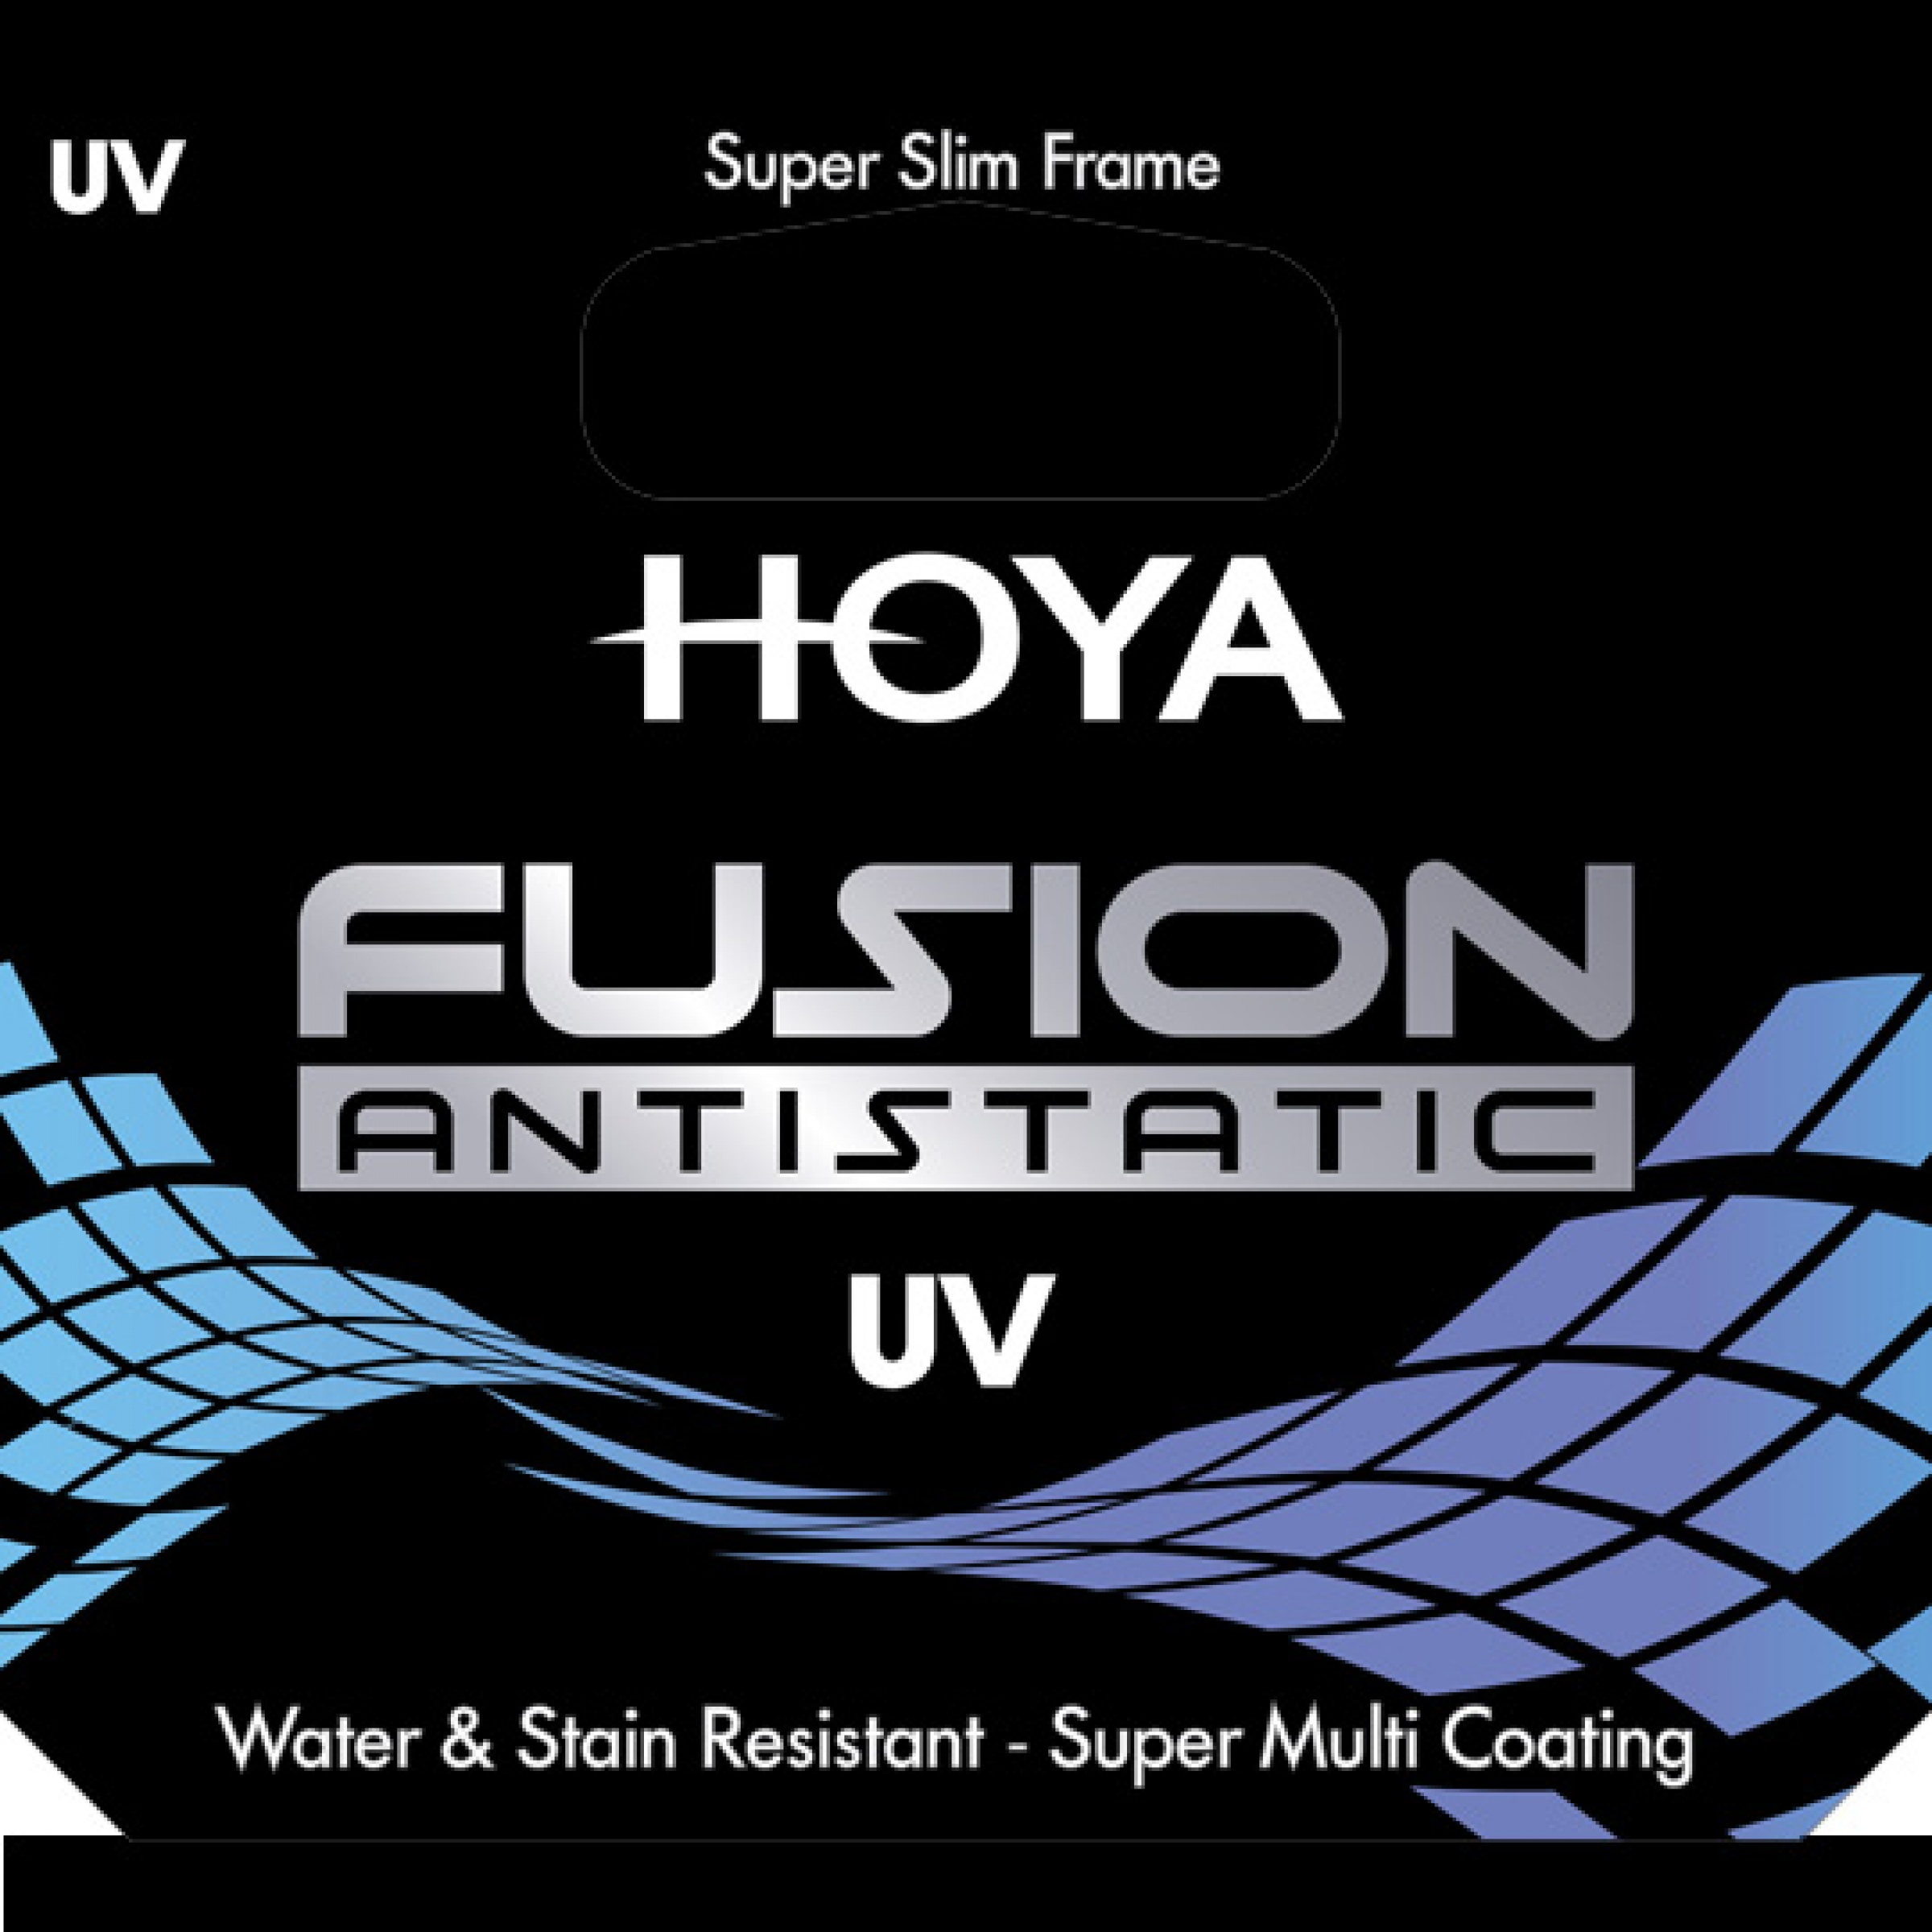 Hoya-58mm-UV-Fusion-Antistatic